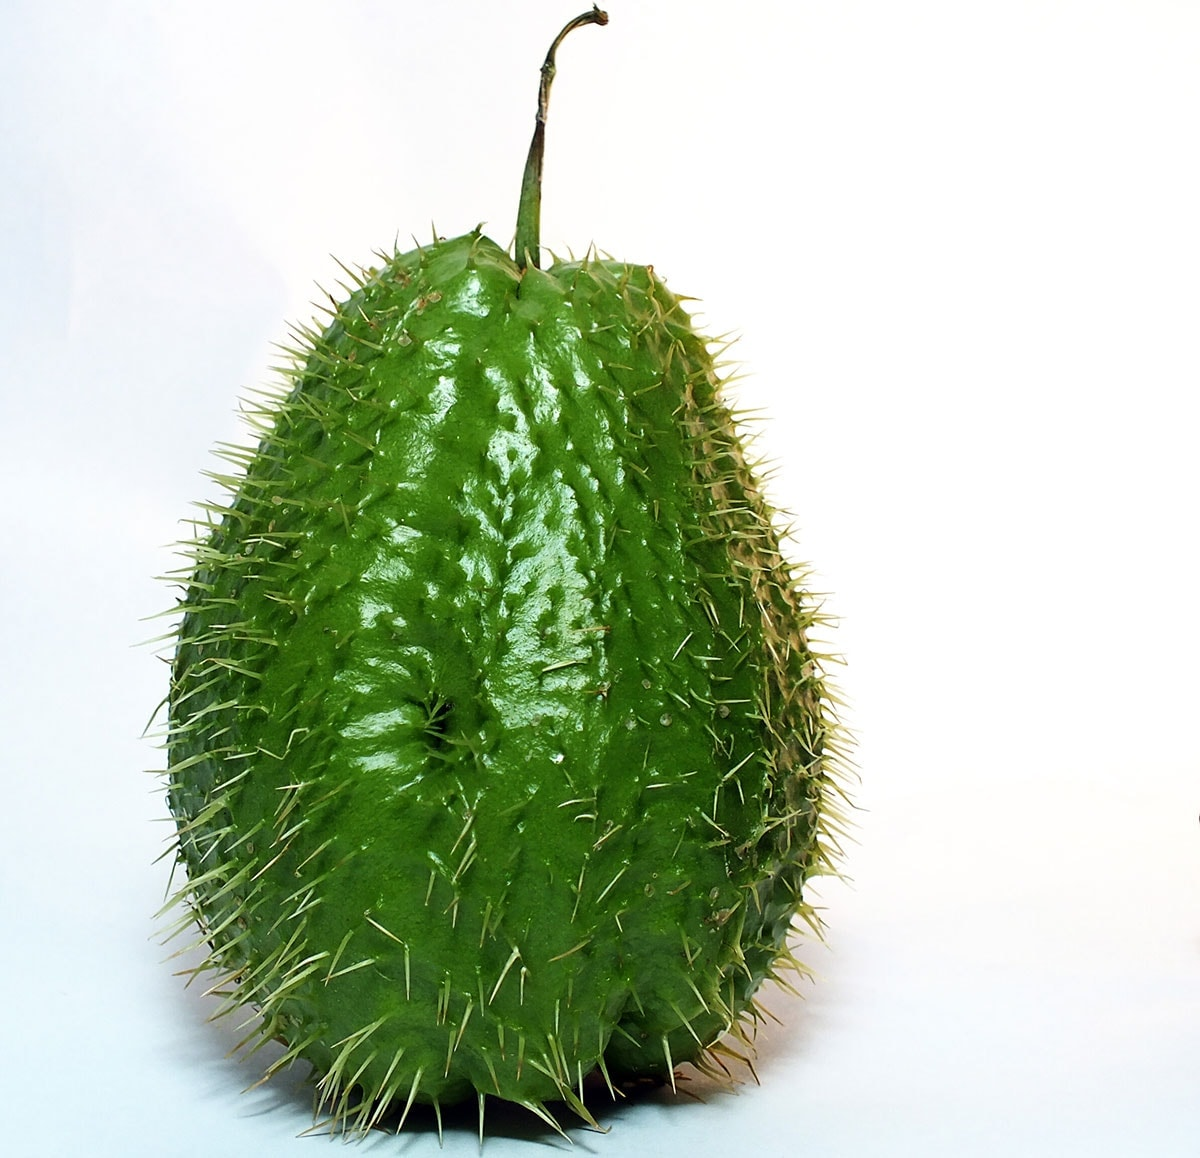 spiny black chayote on a white background